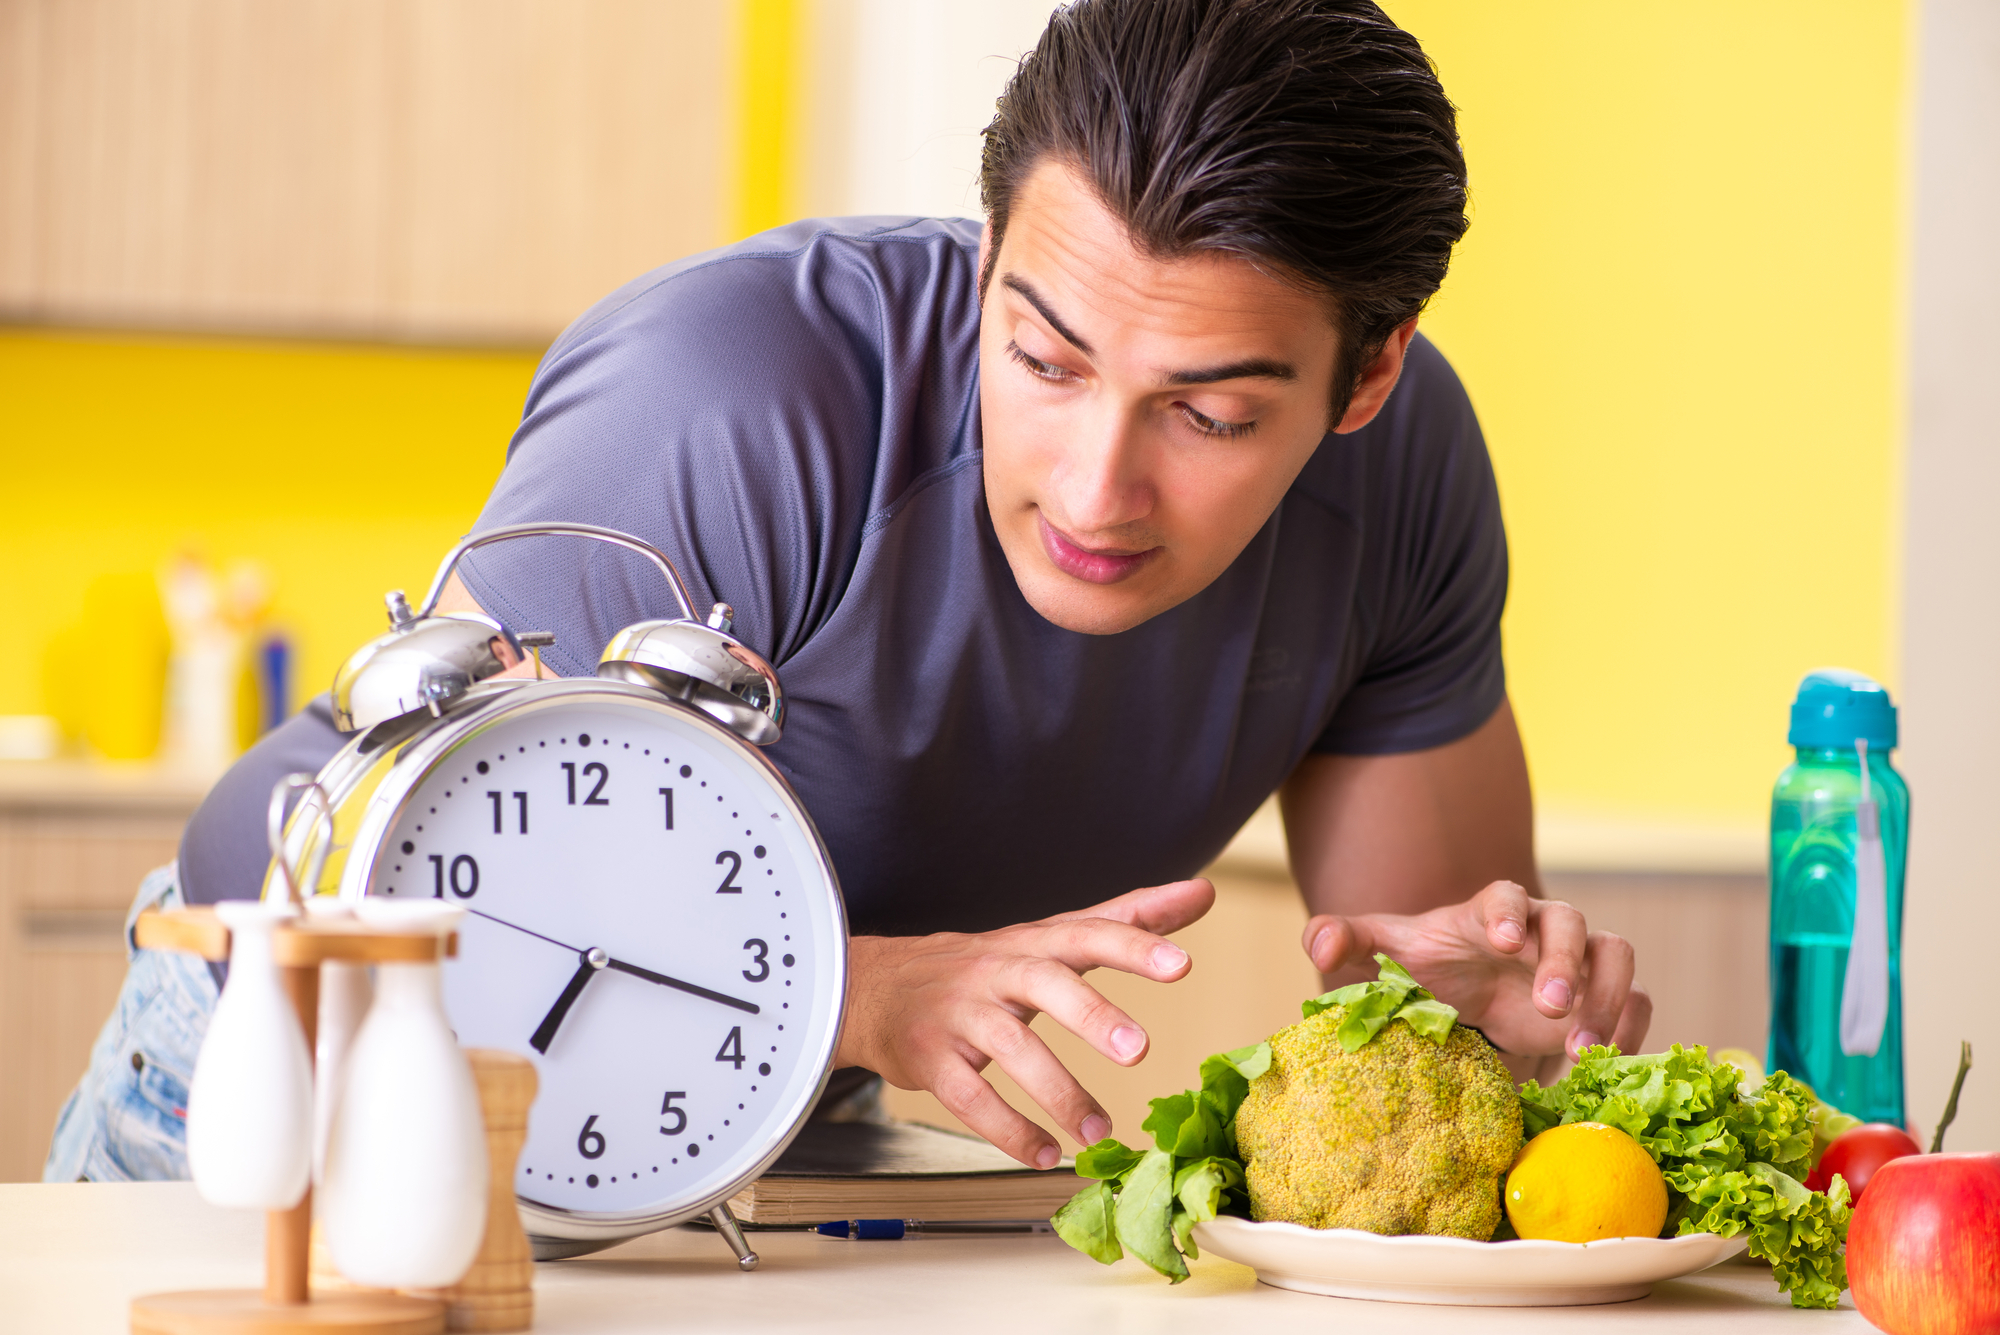 Trial suggests fasting 14 hours a day helps diabetes and weight loss